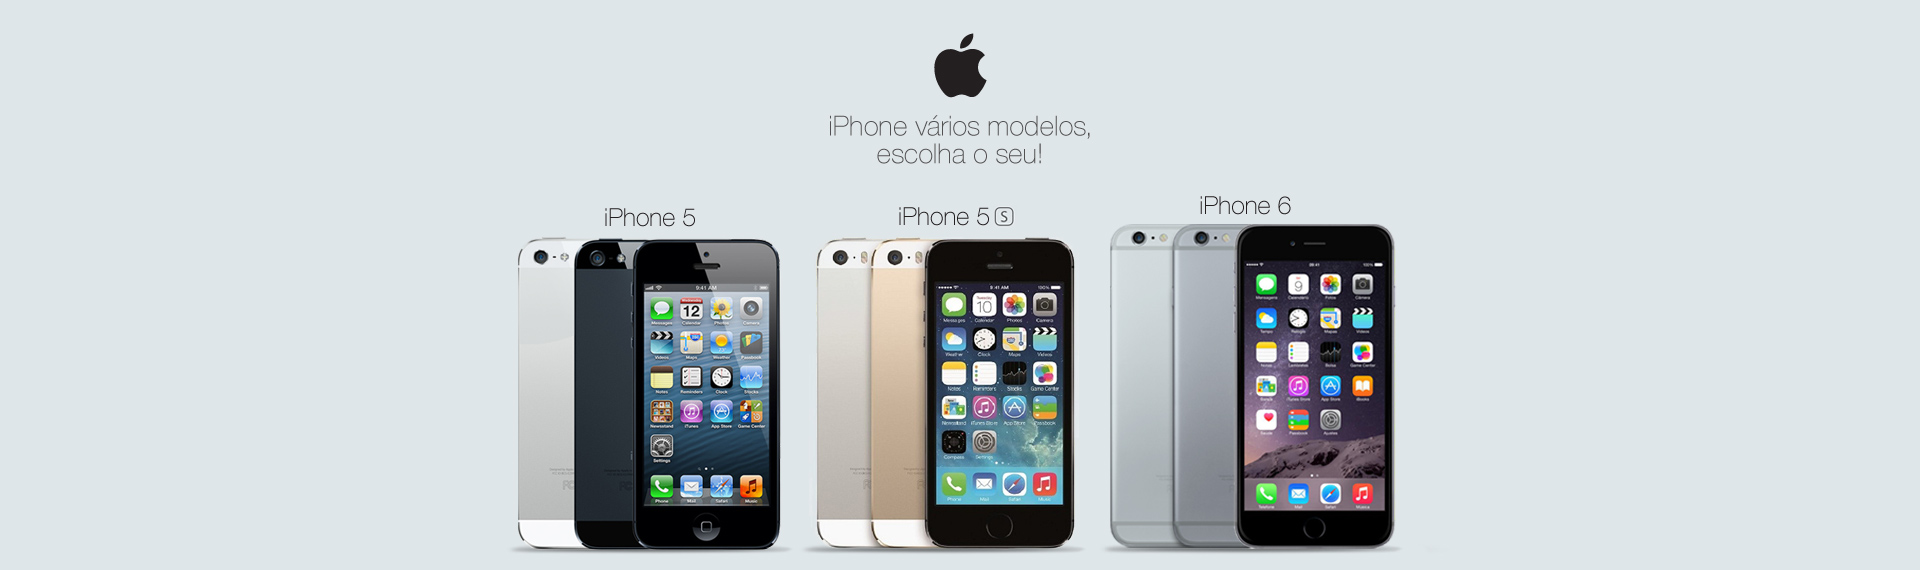 Banner IPHONE